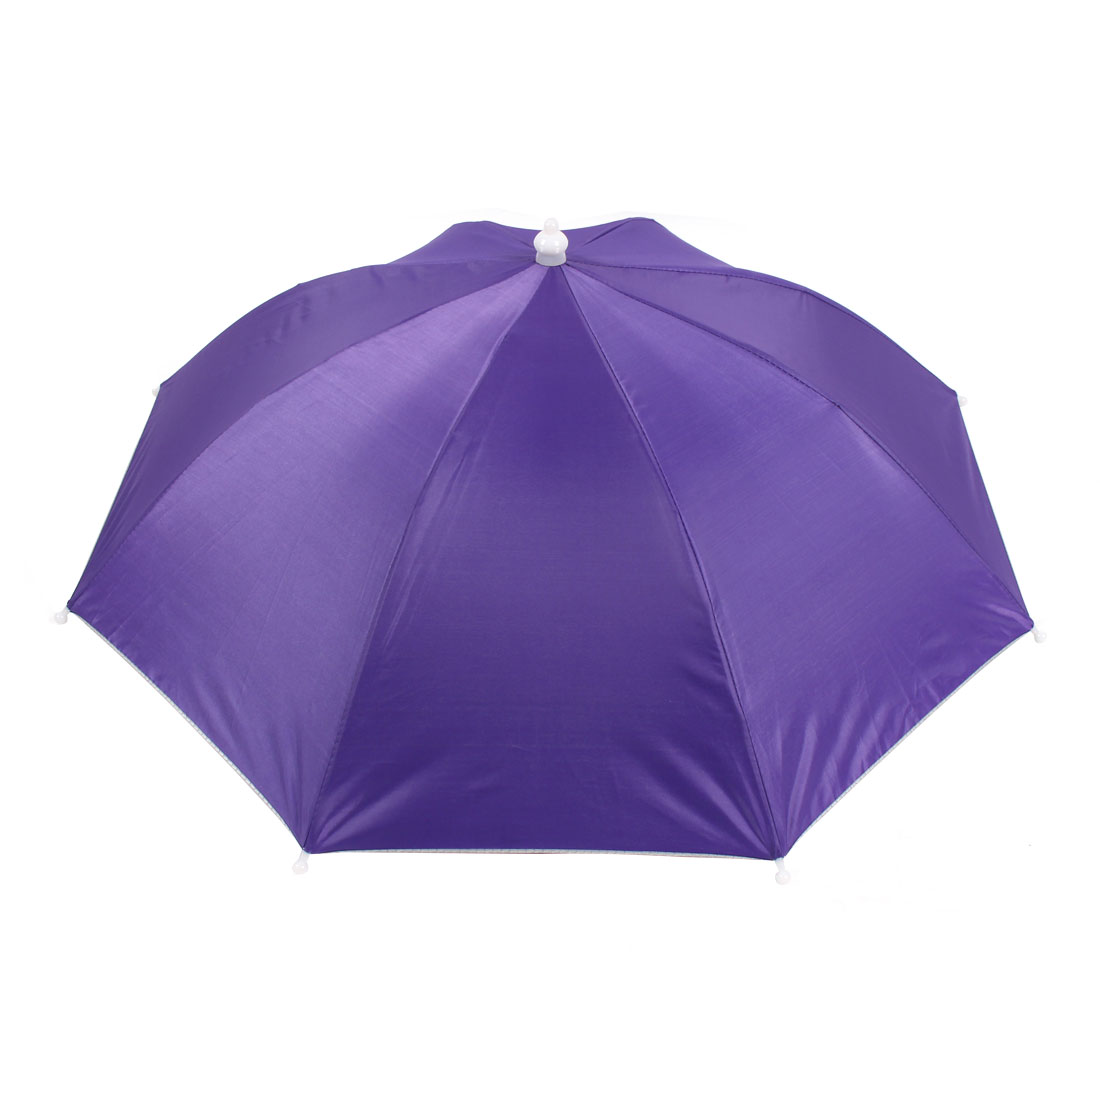 Outdoor Fishing Sports Polyester Umbrella Hat Purple